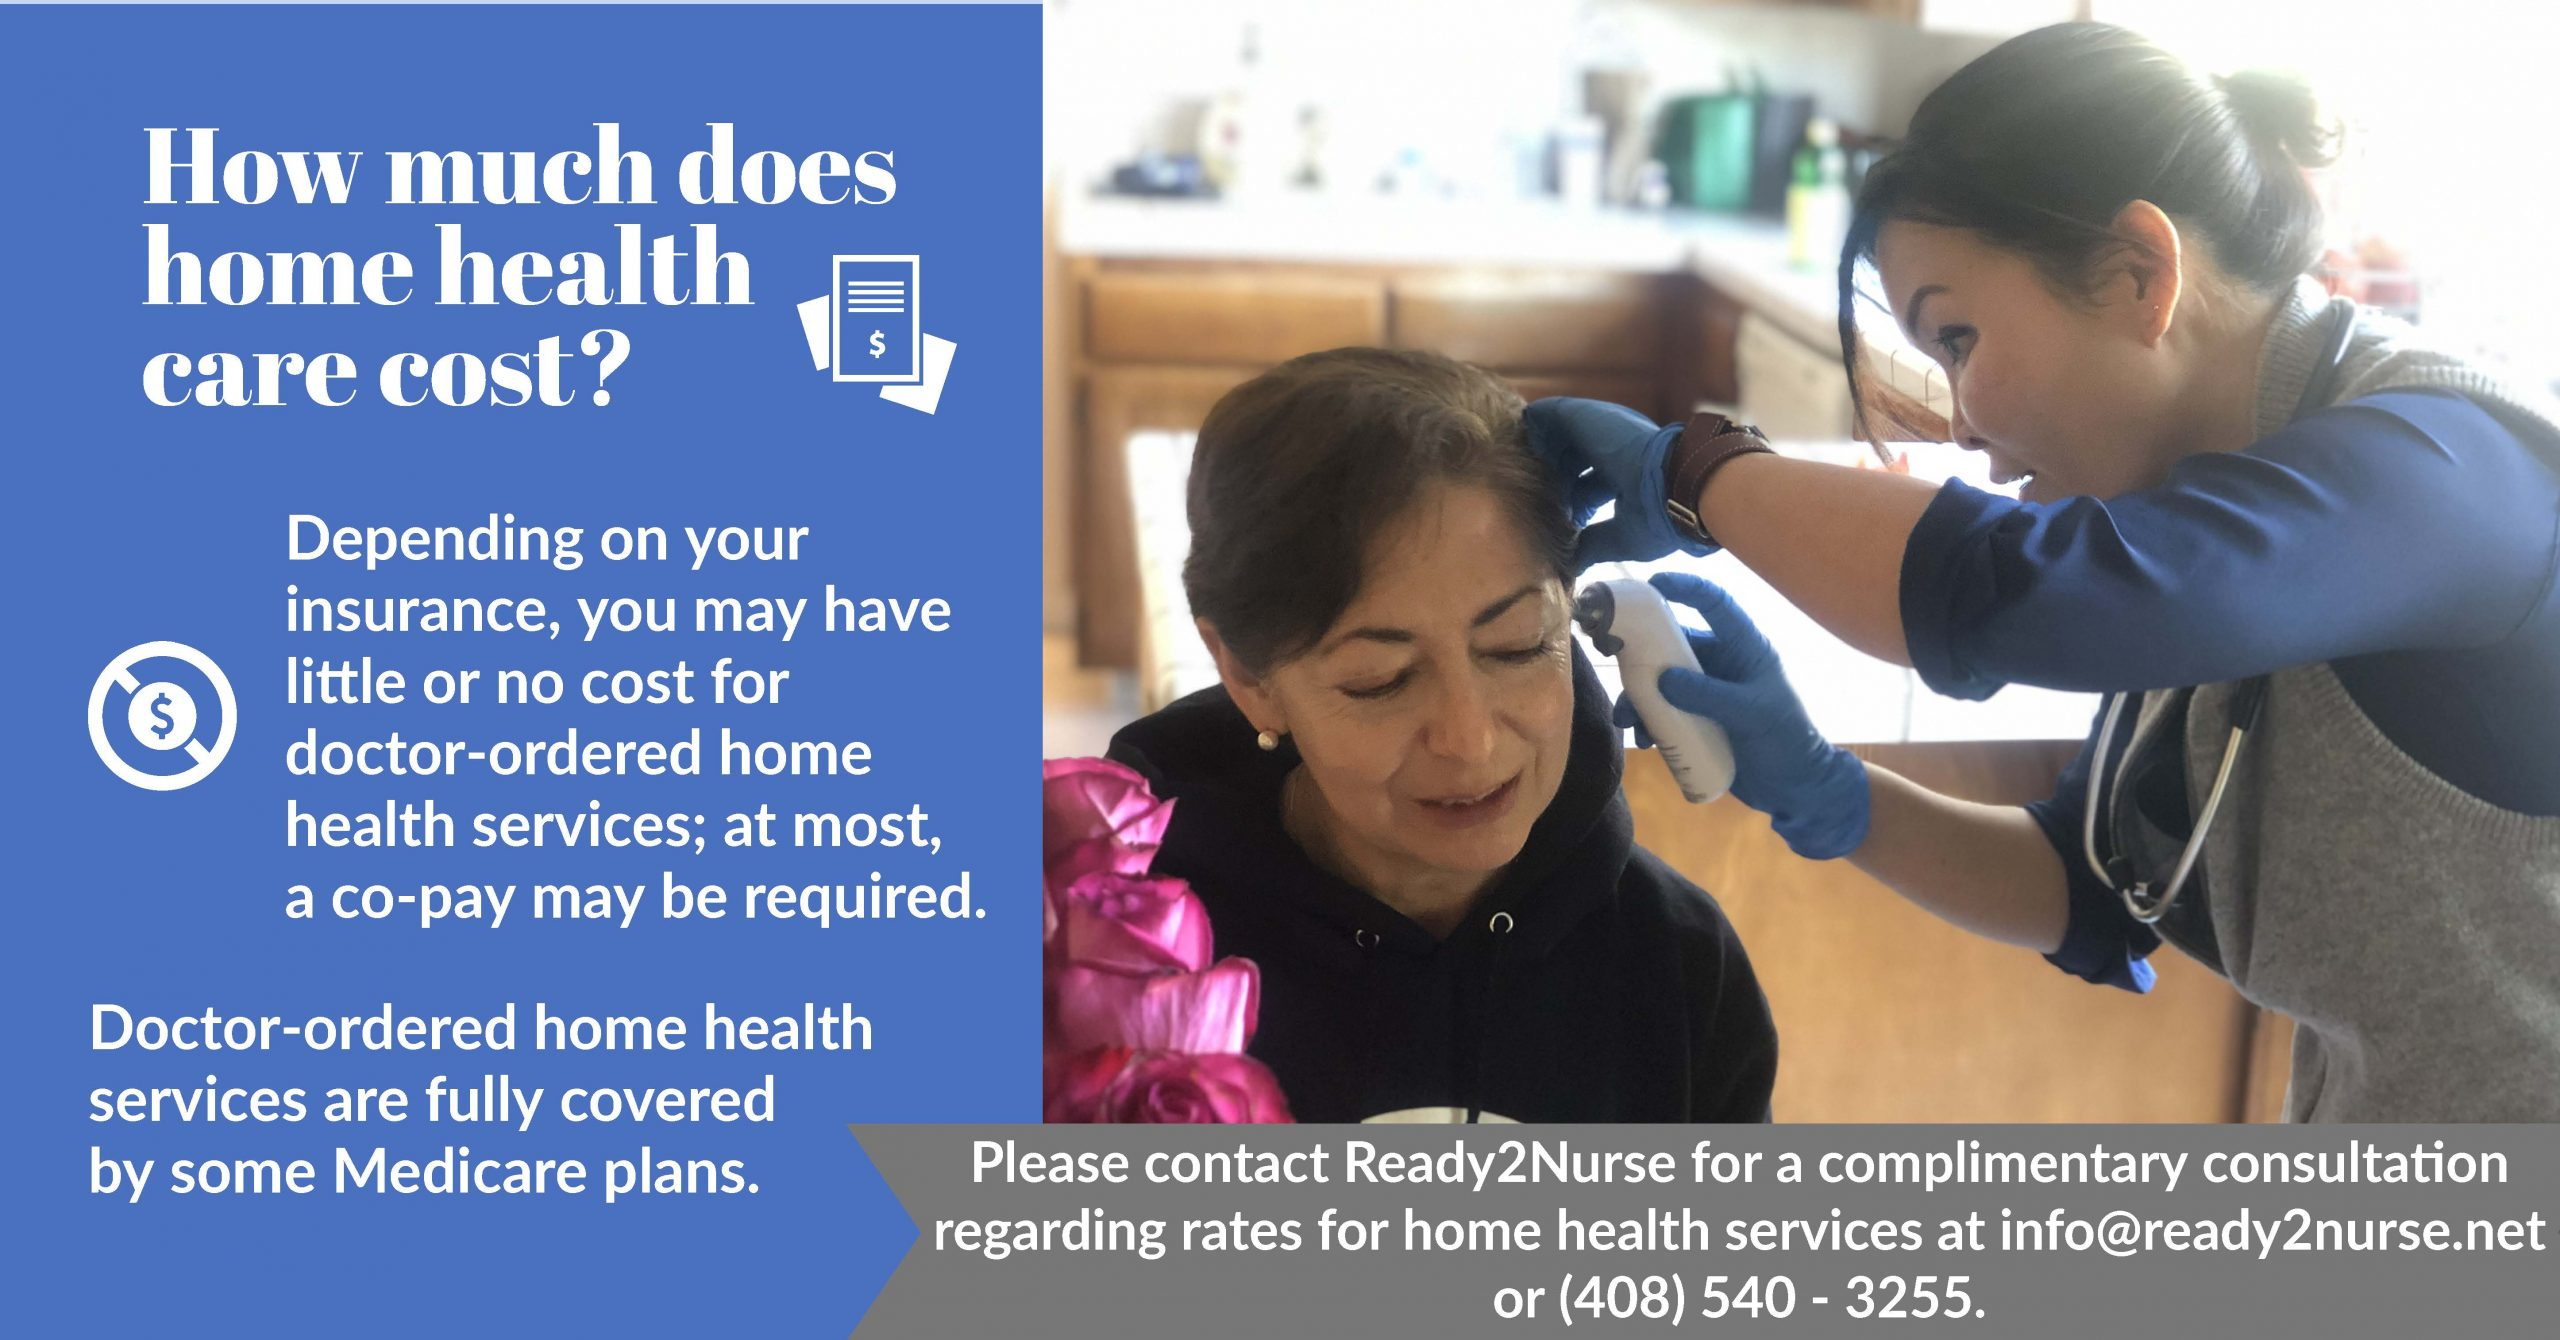 How much does home health care cost?